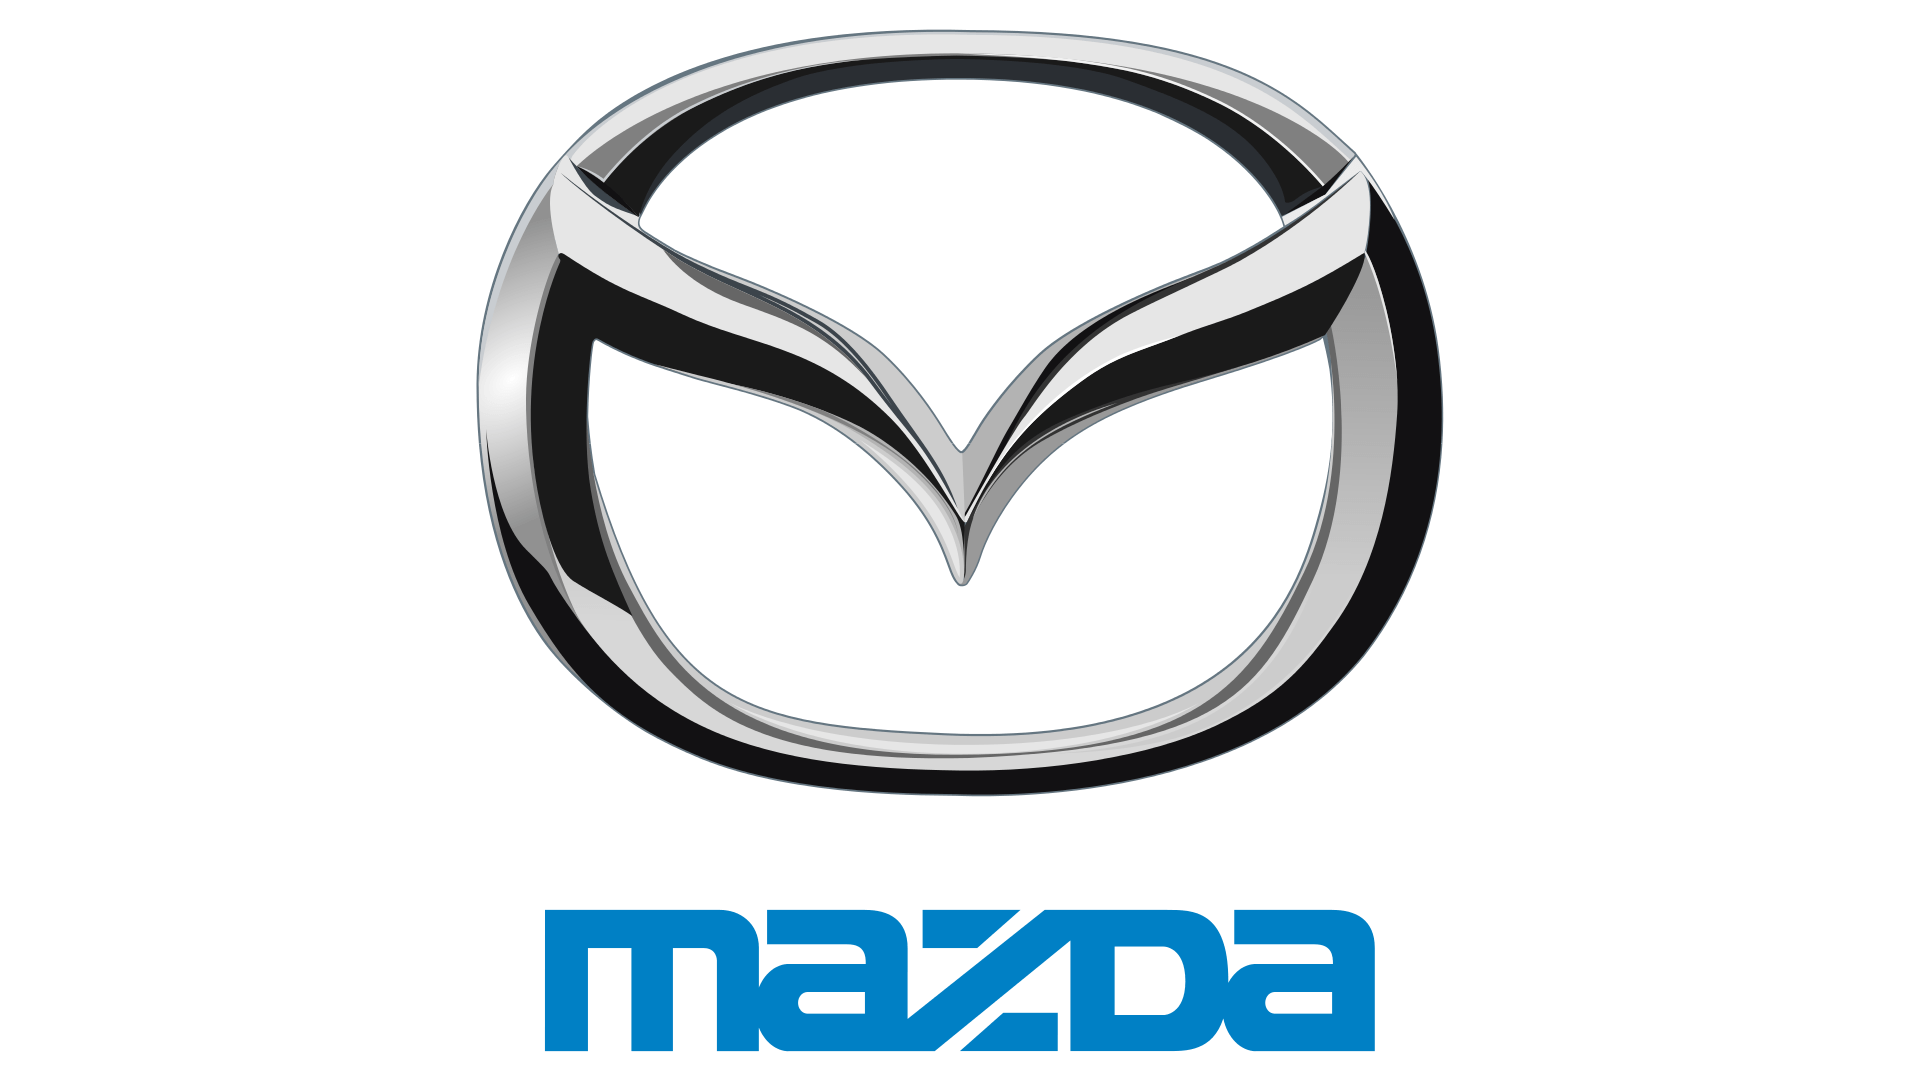 Car logo png. Mazda transparent stickpng